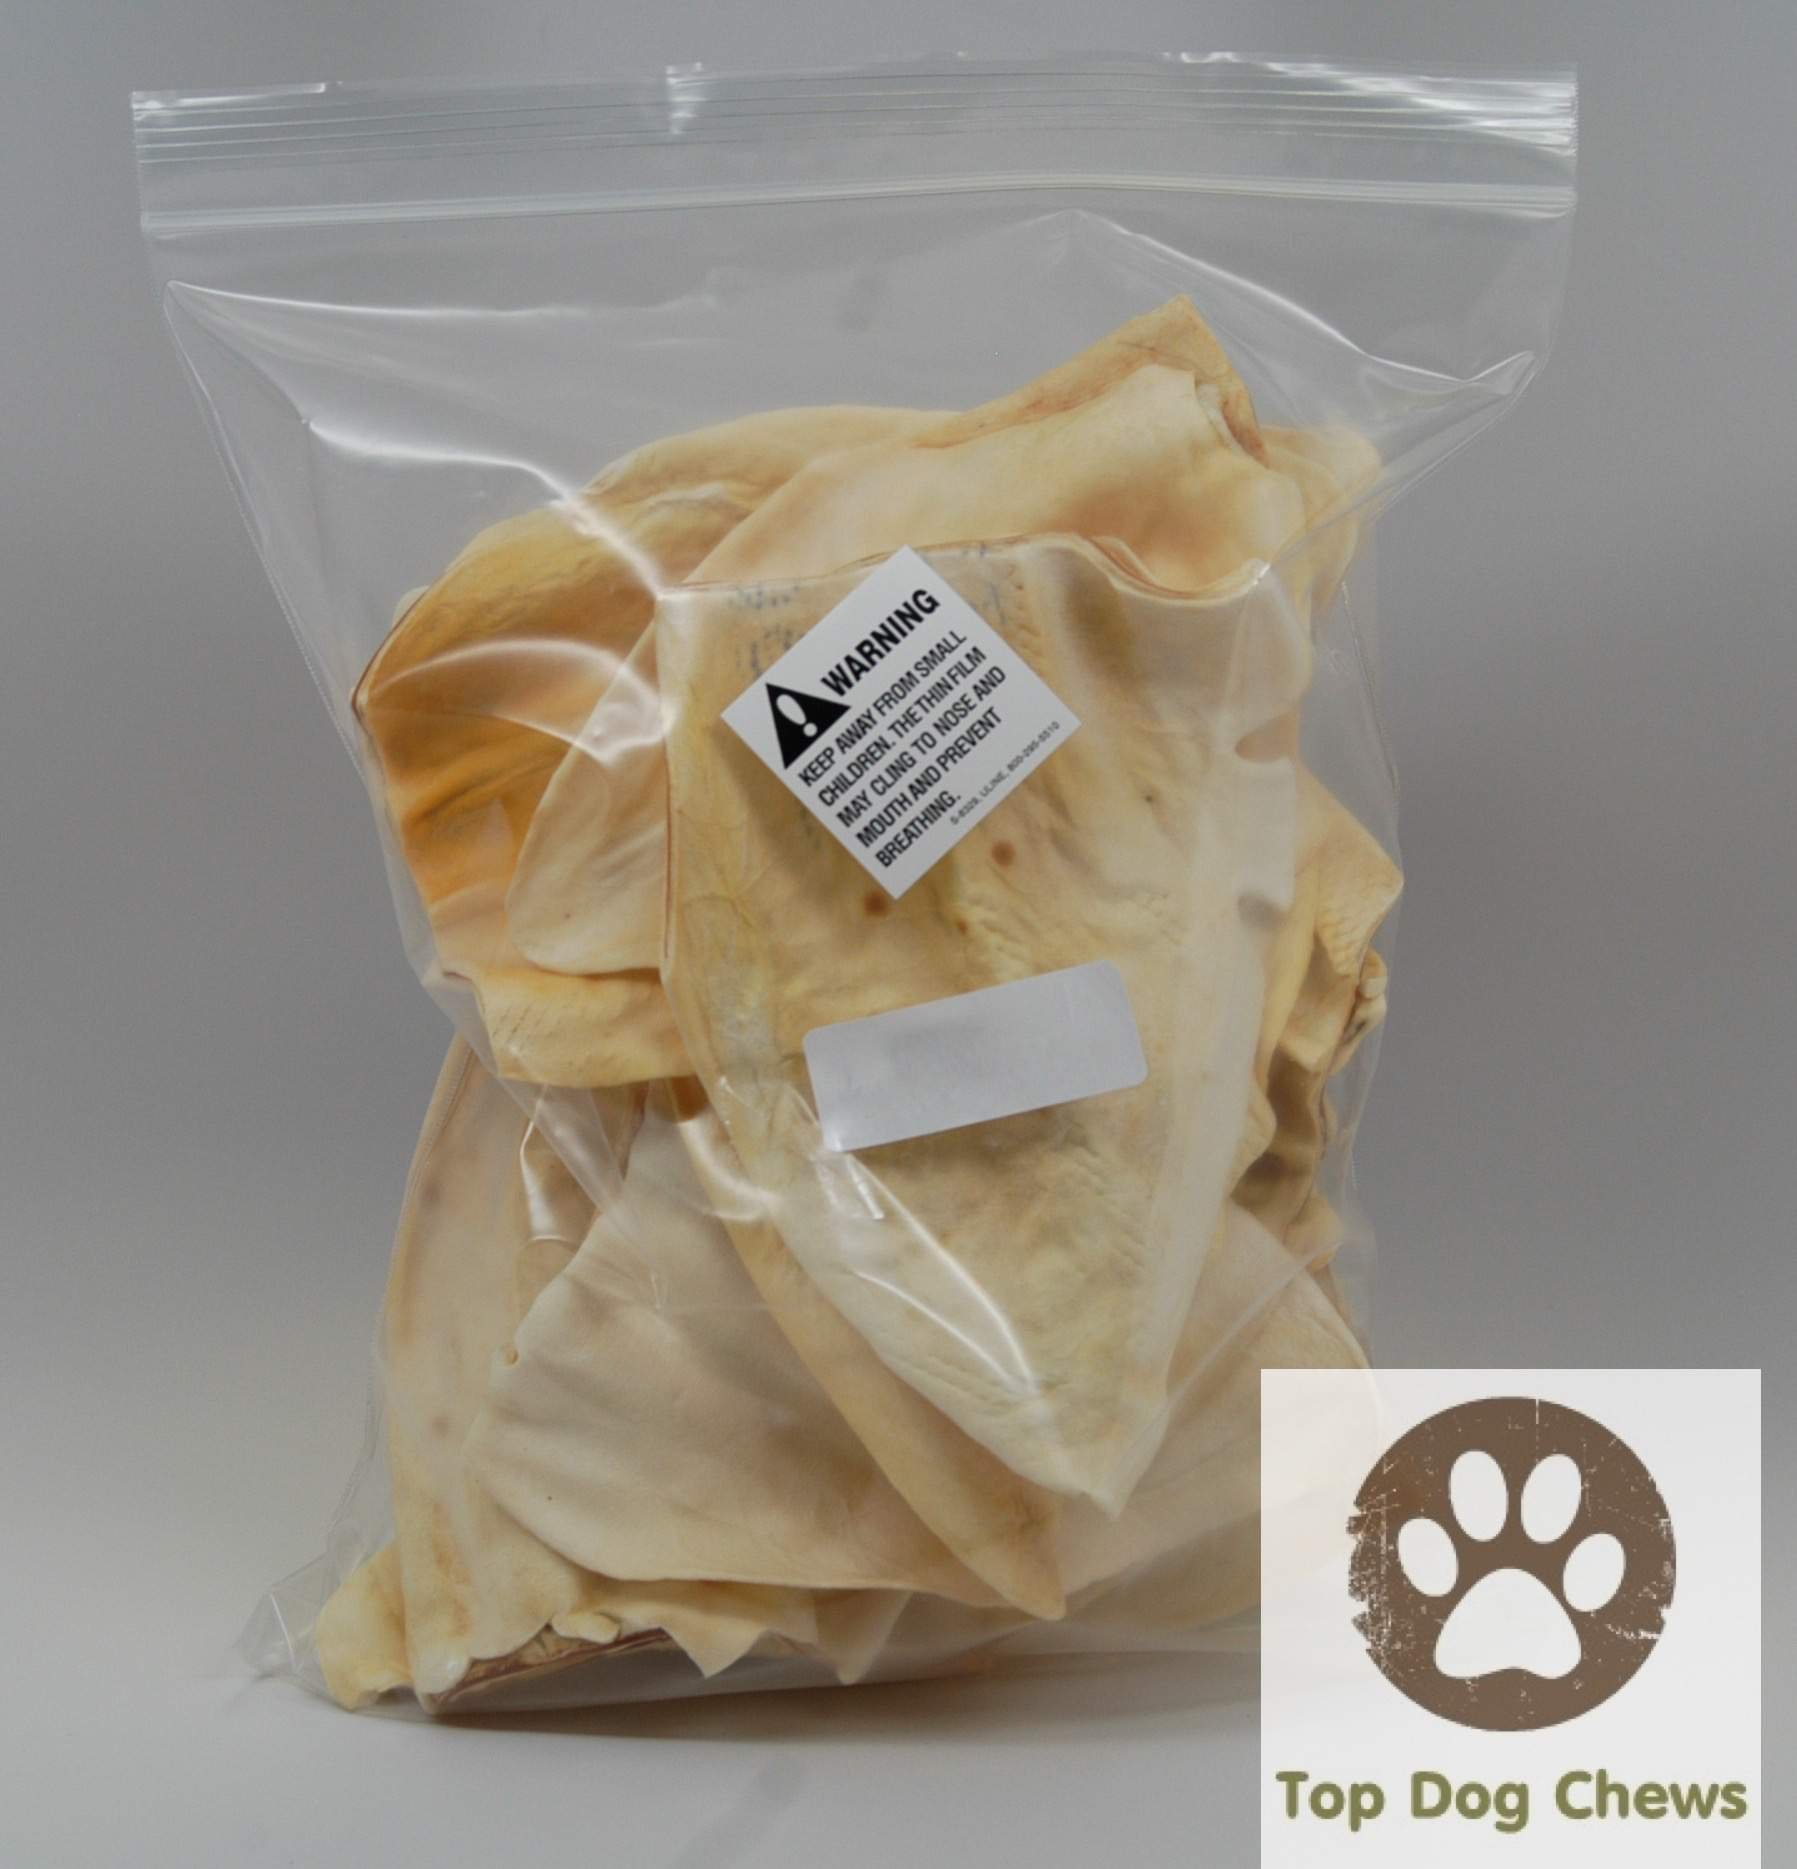 Top Dog Chews Cow Ears Jumbo Thick 100 Pack - Huge No Additives, Chemicals or Hormones - USDA/FDA Inspected